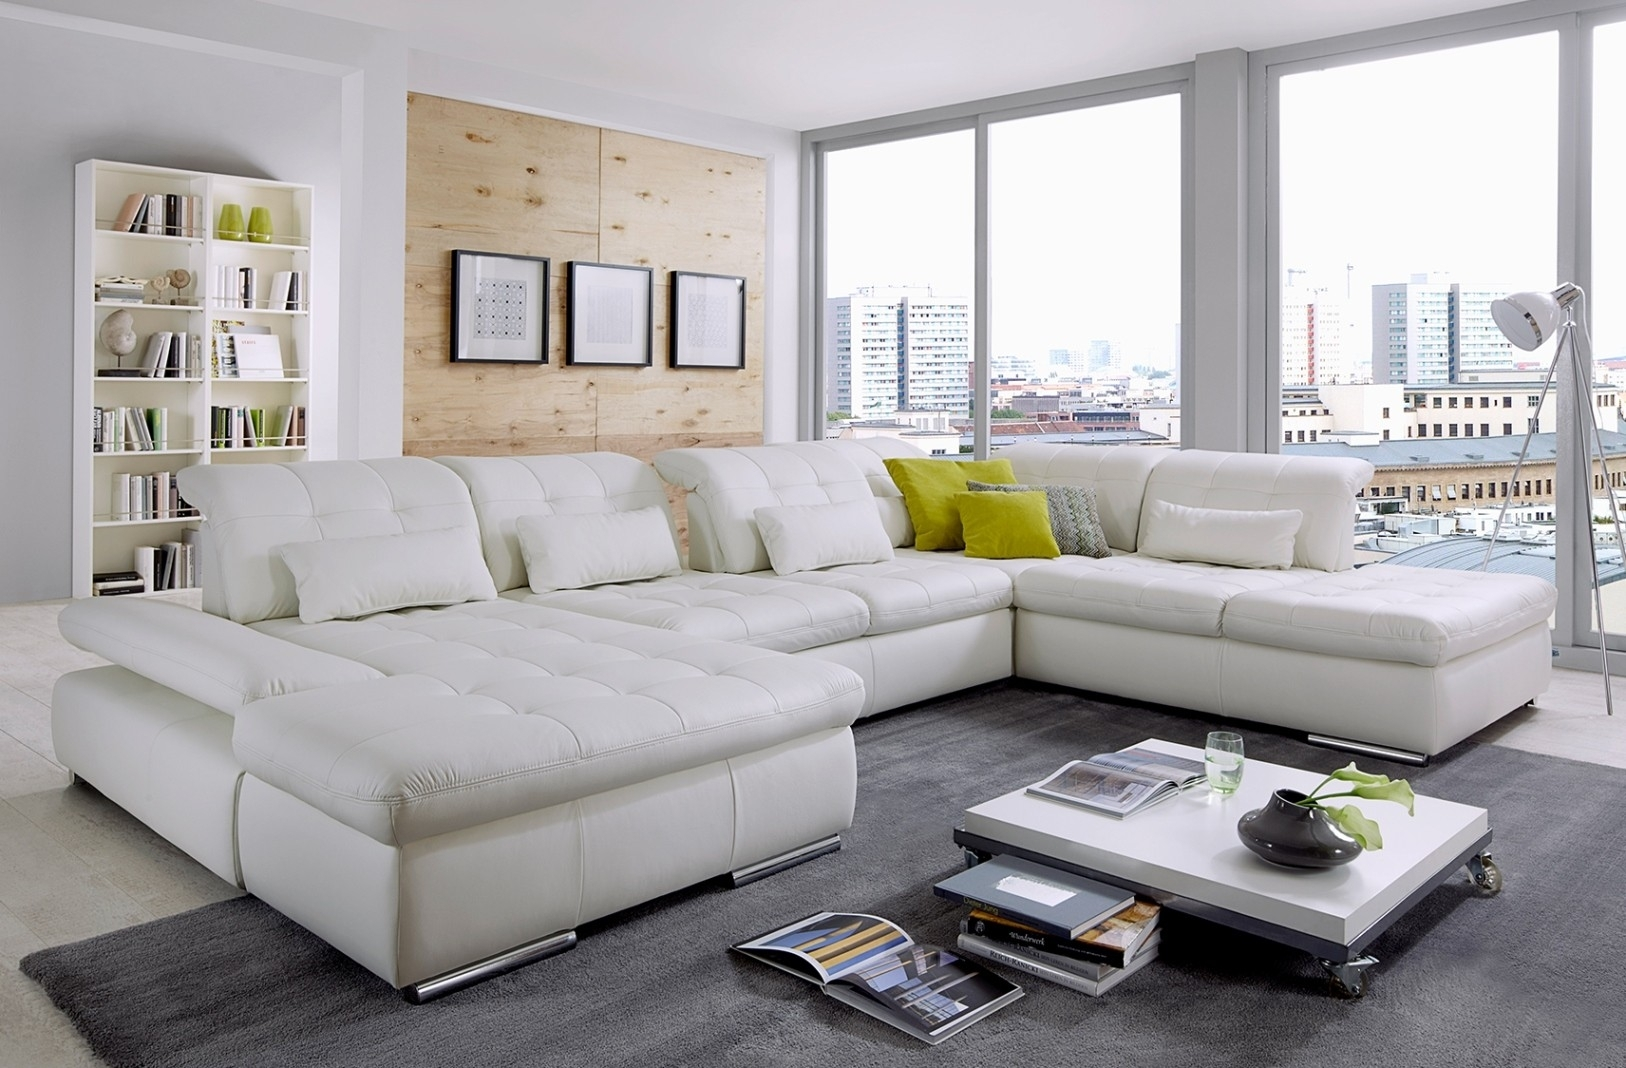 Alpine Sectional Sofa In Punch White Leather In Trinidad And Tobago Sectional Sofas (Image 2 of 10)